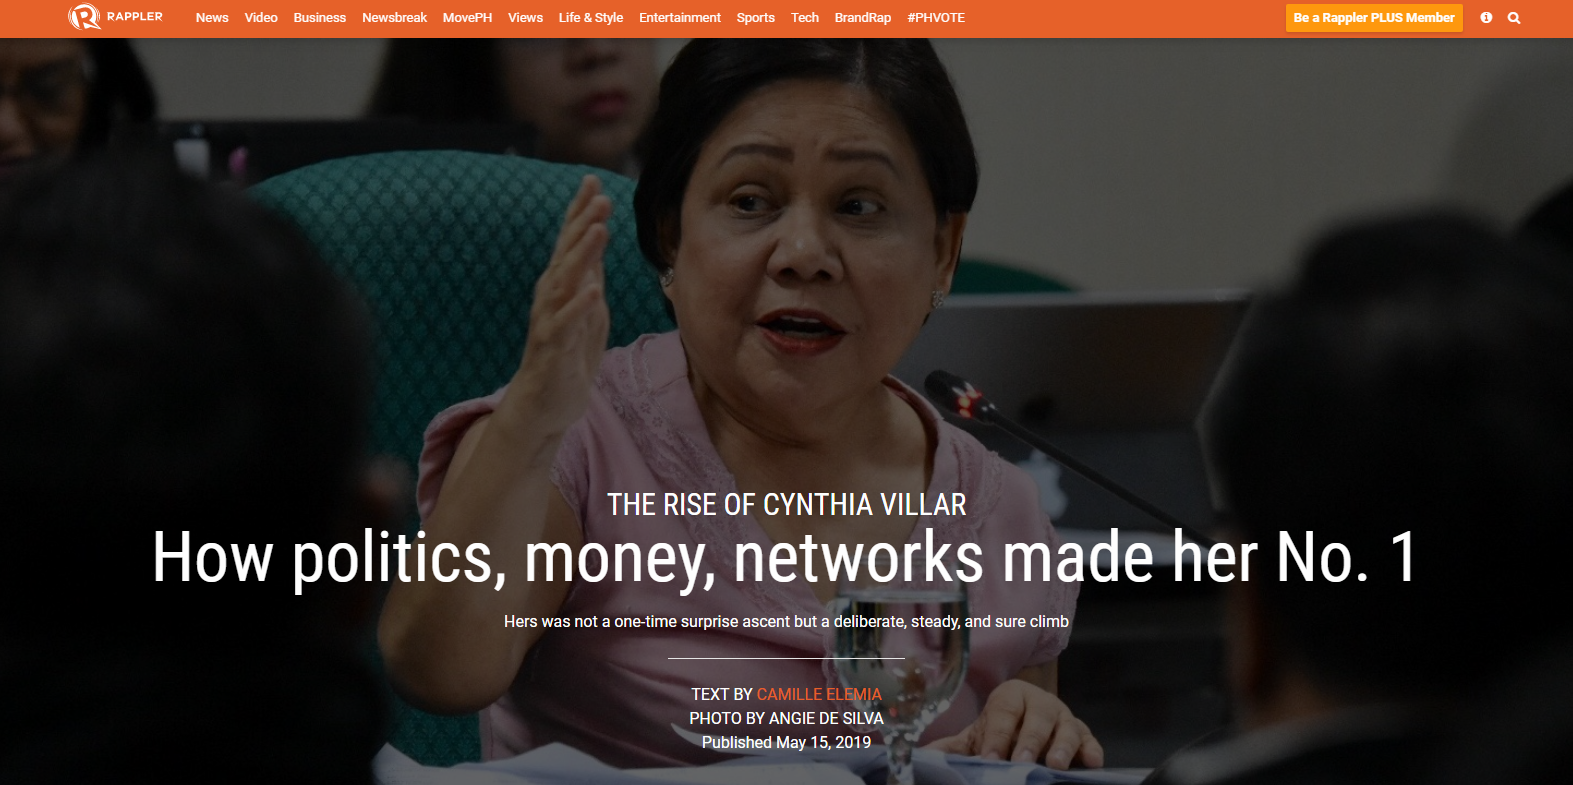 The rise of Cynthia Villar: How politics, money, networks made her No. 1